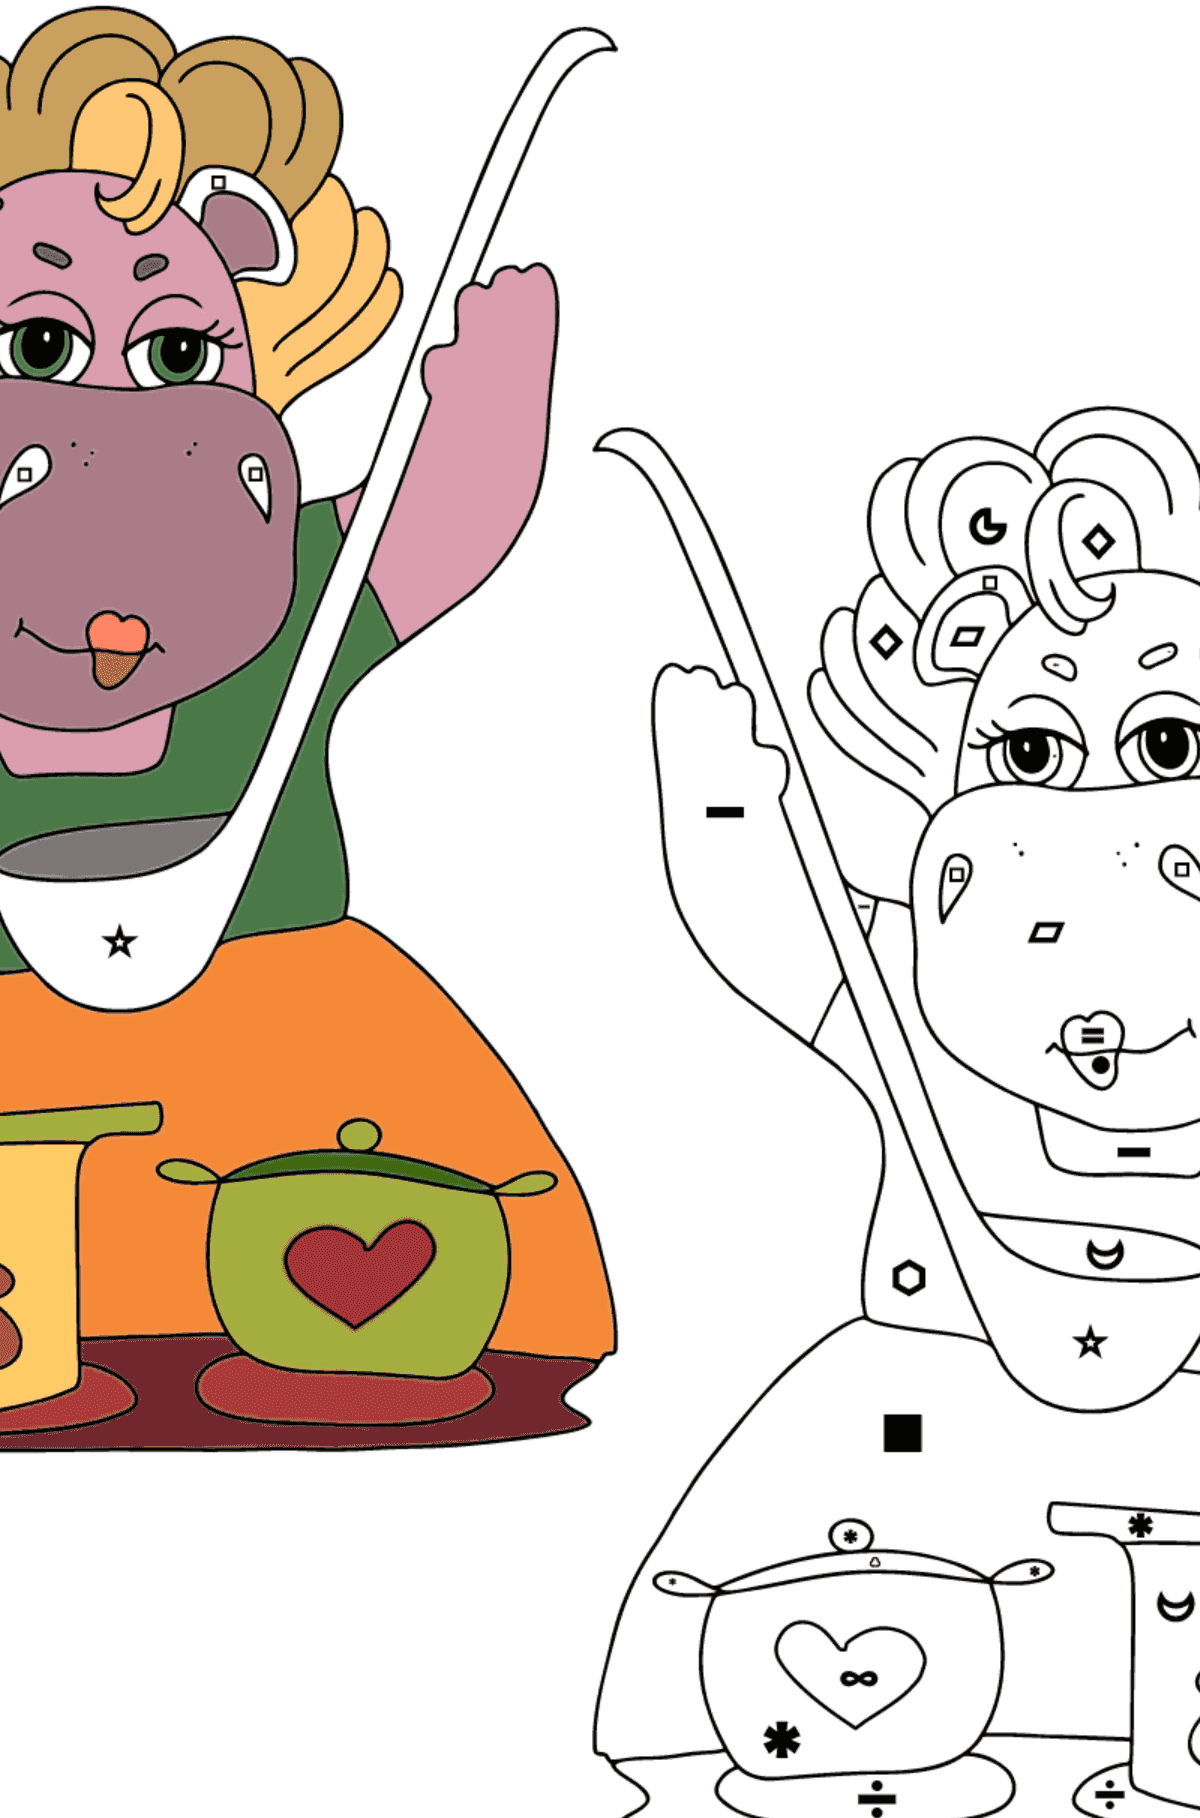 Coloring Page - Hippos are Cooking a Delicious Lunch for Children  - Color by Symbols and Geometric Shapes